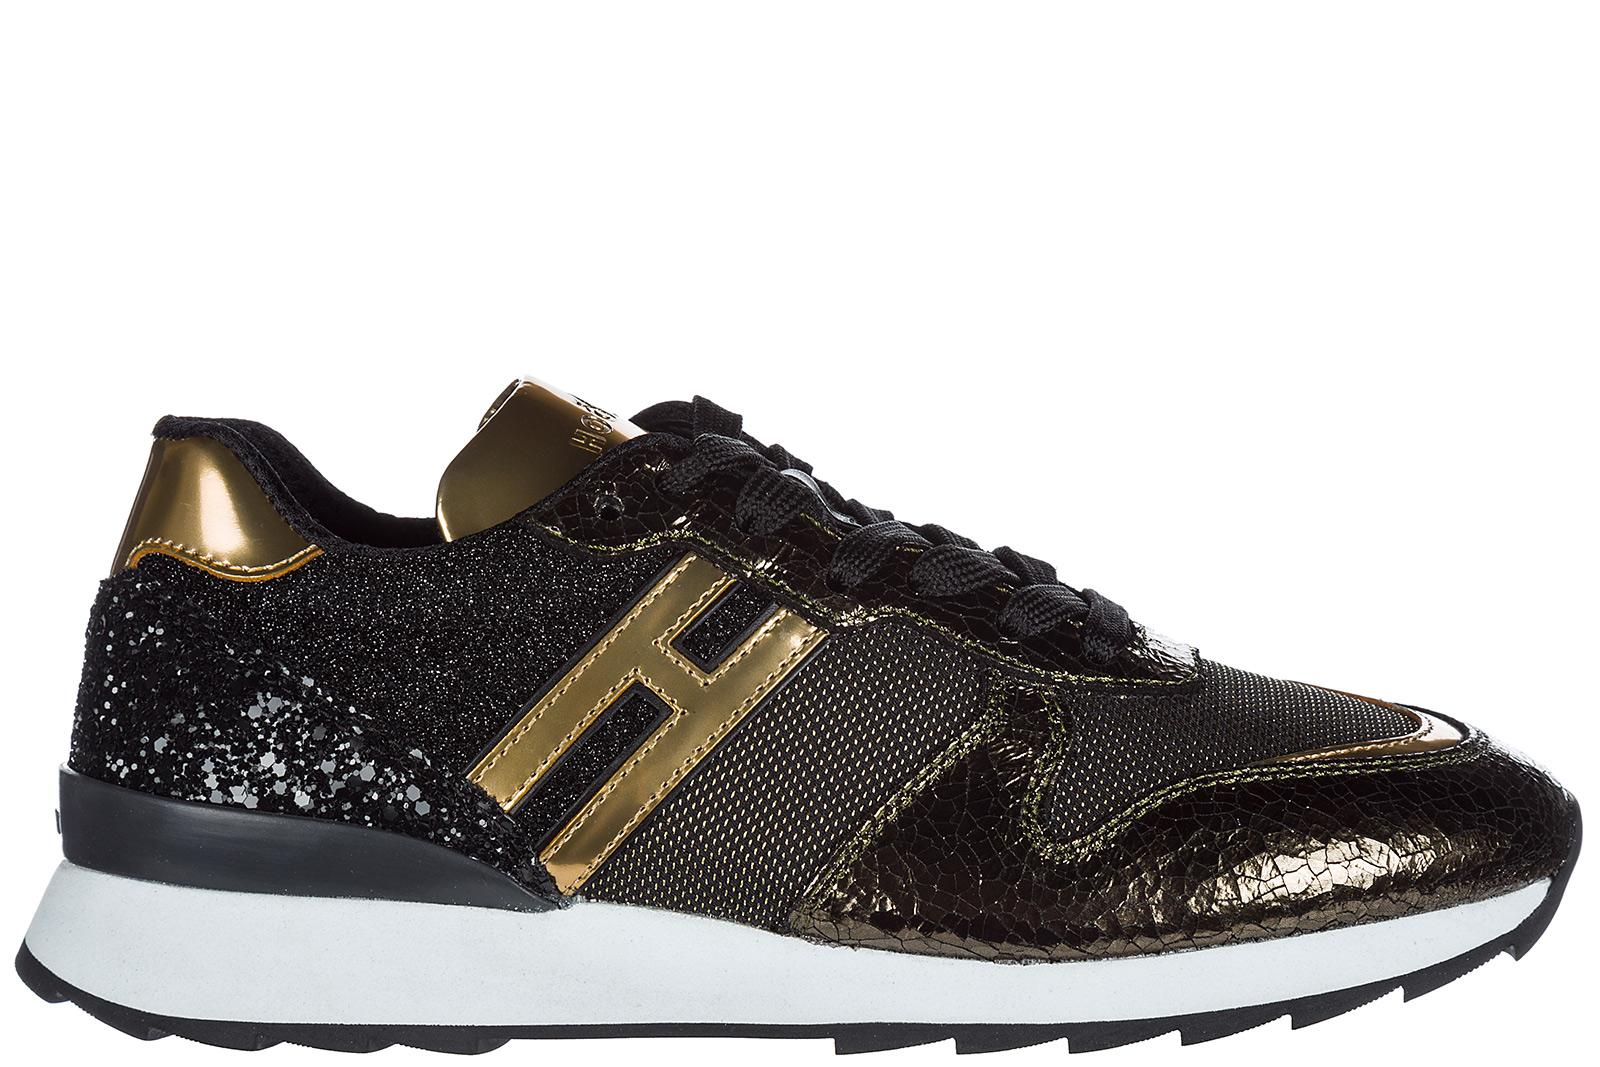 Hogan Women's Shoes Leather Trainers Sneakers R261 In Gold